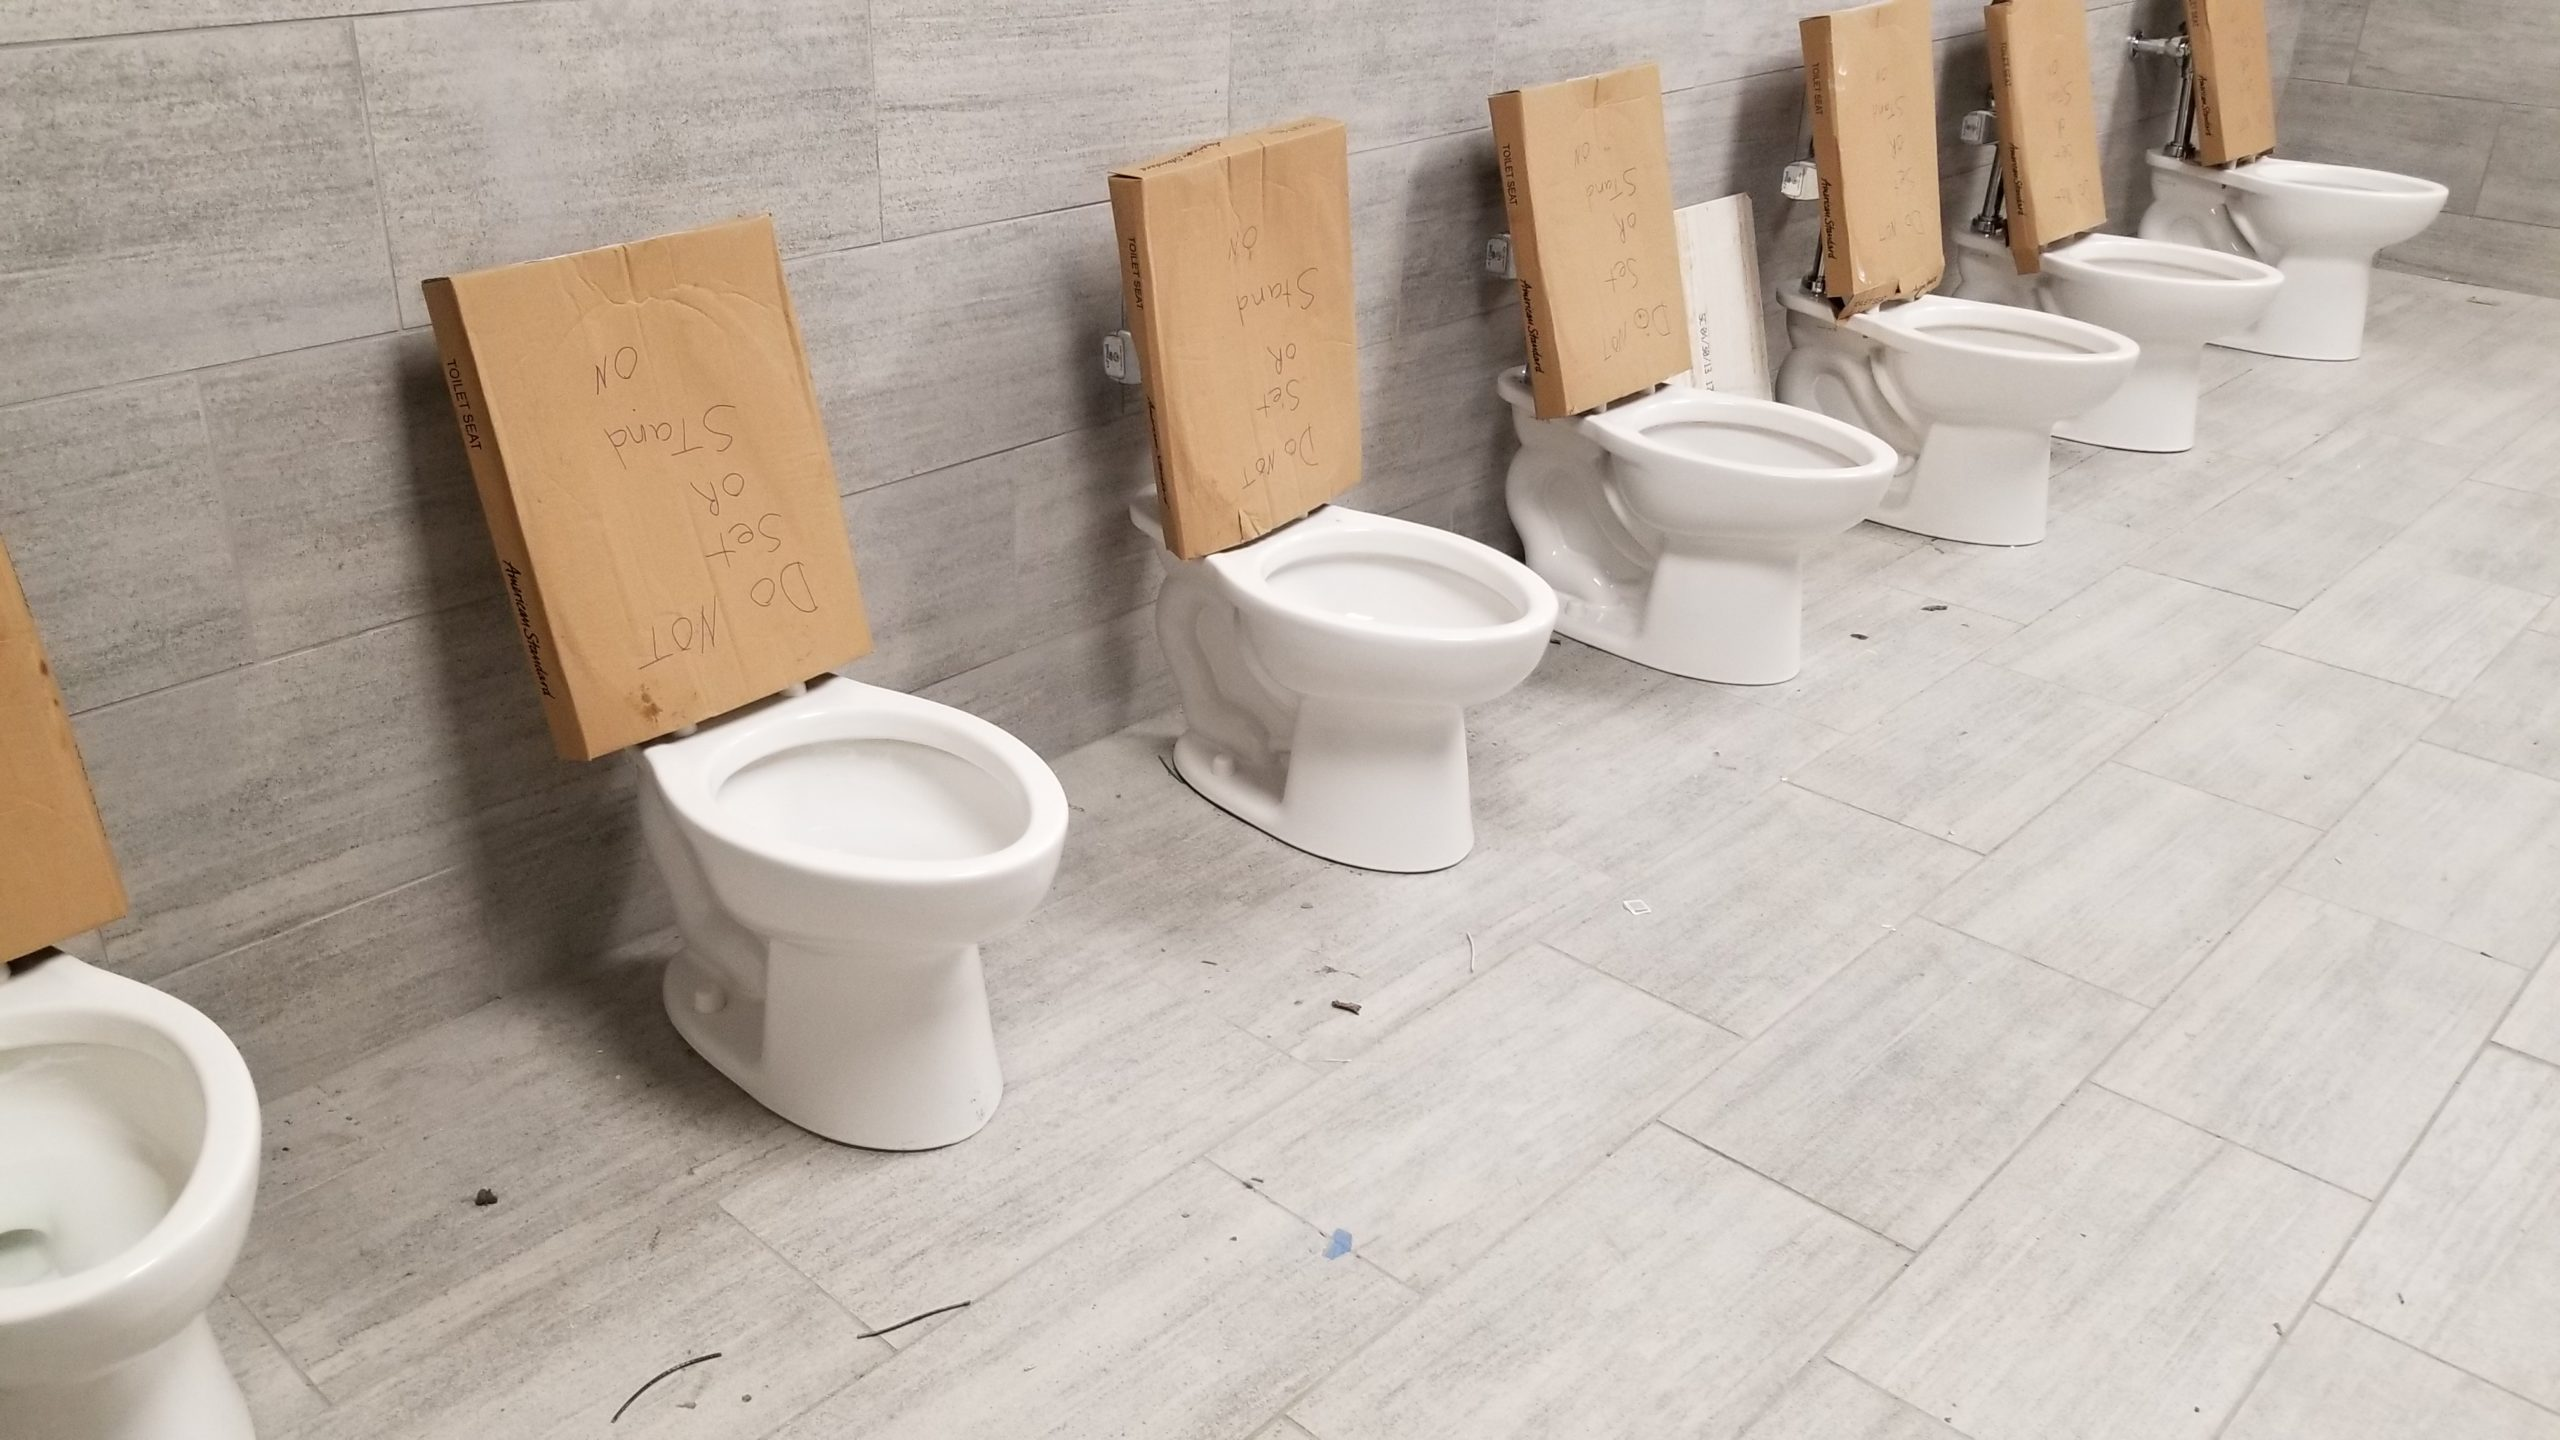 public bathroom plumbing renovation experts